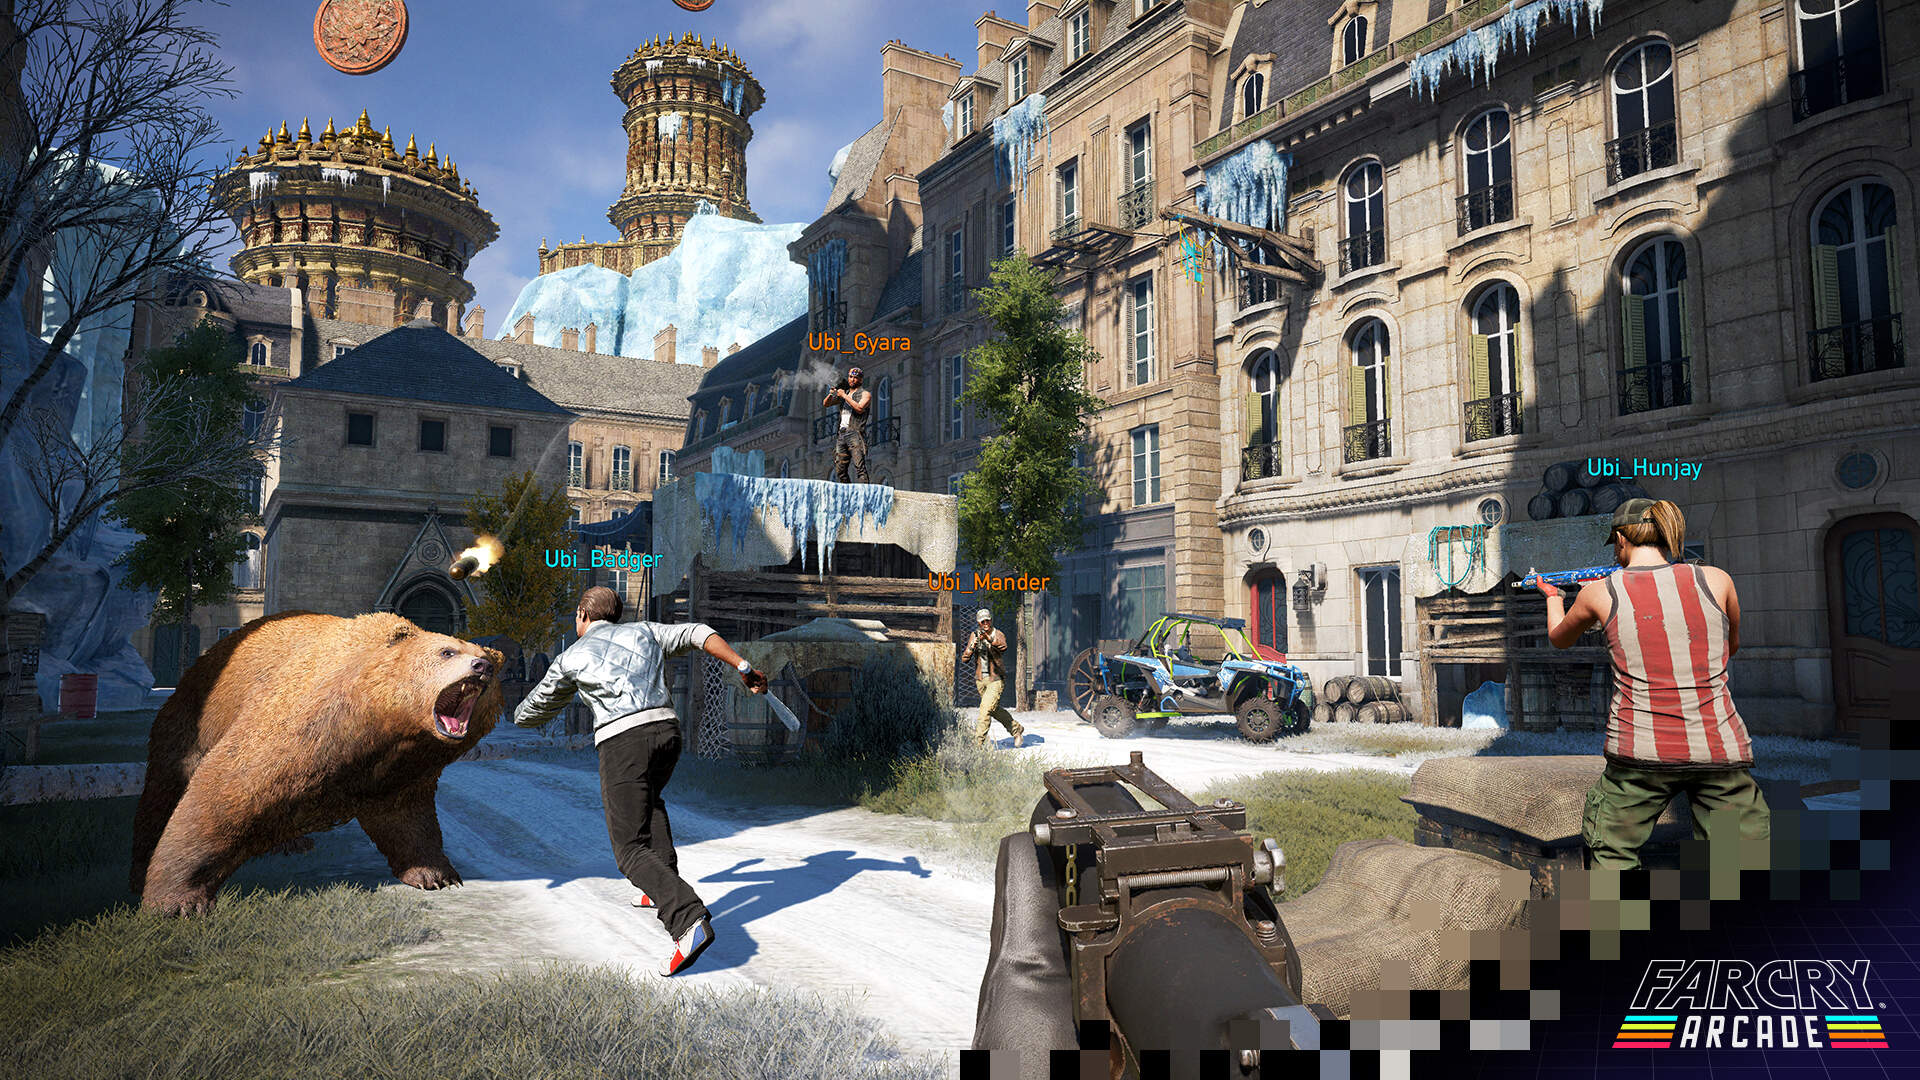 Play Pubg In Far Cry 5 Arcade Thanks To This Custom Map Usgamer